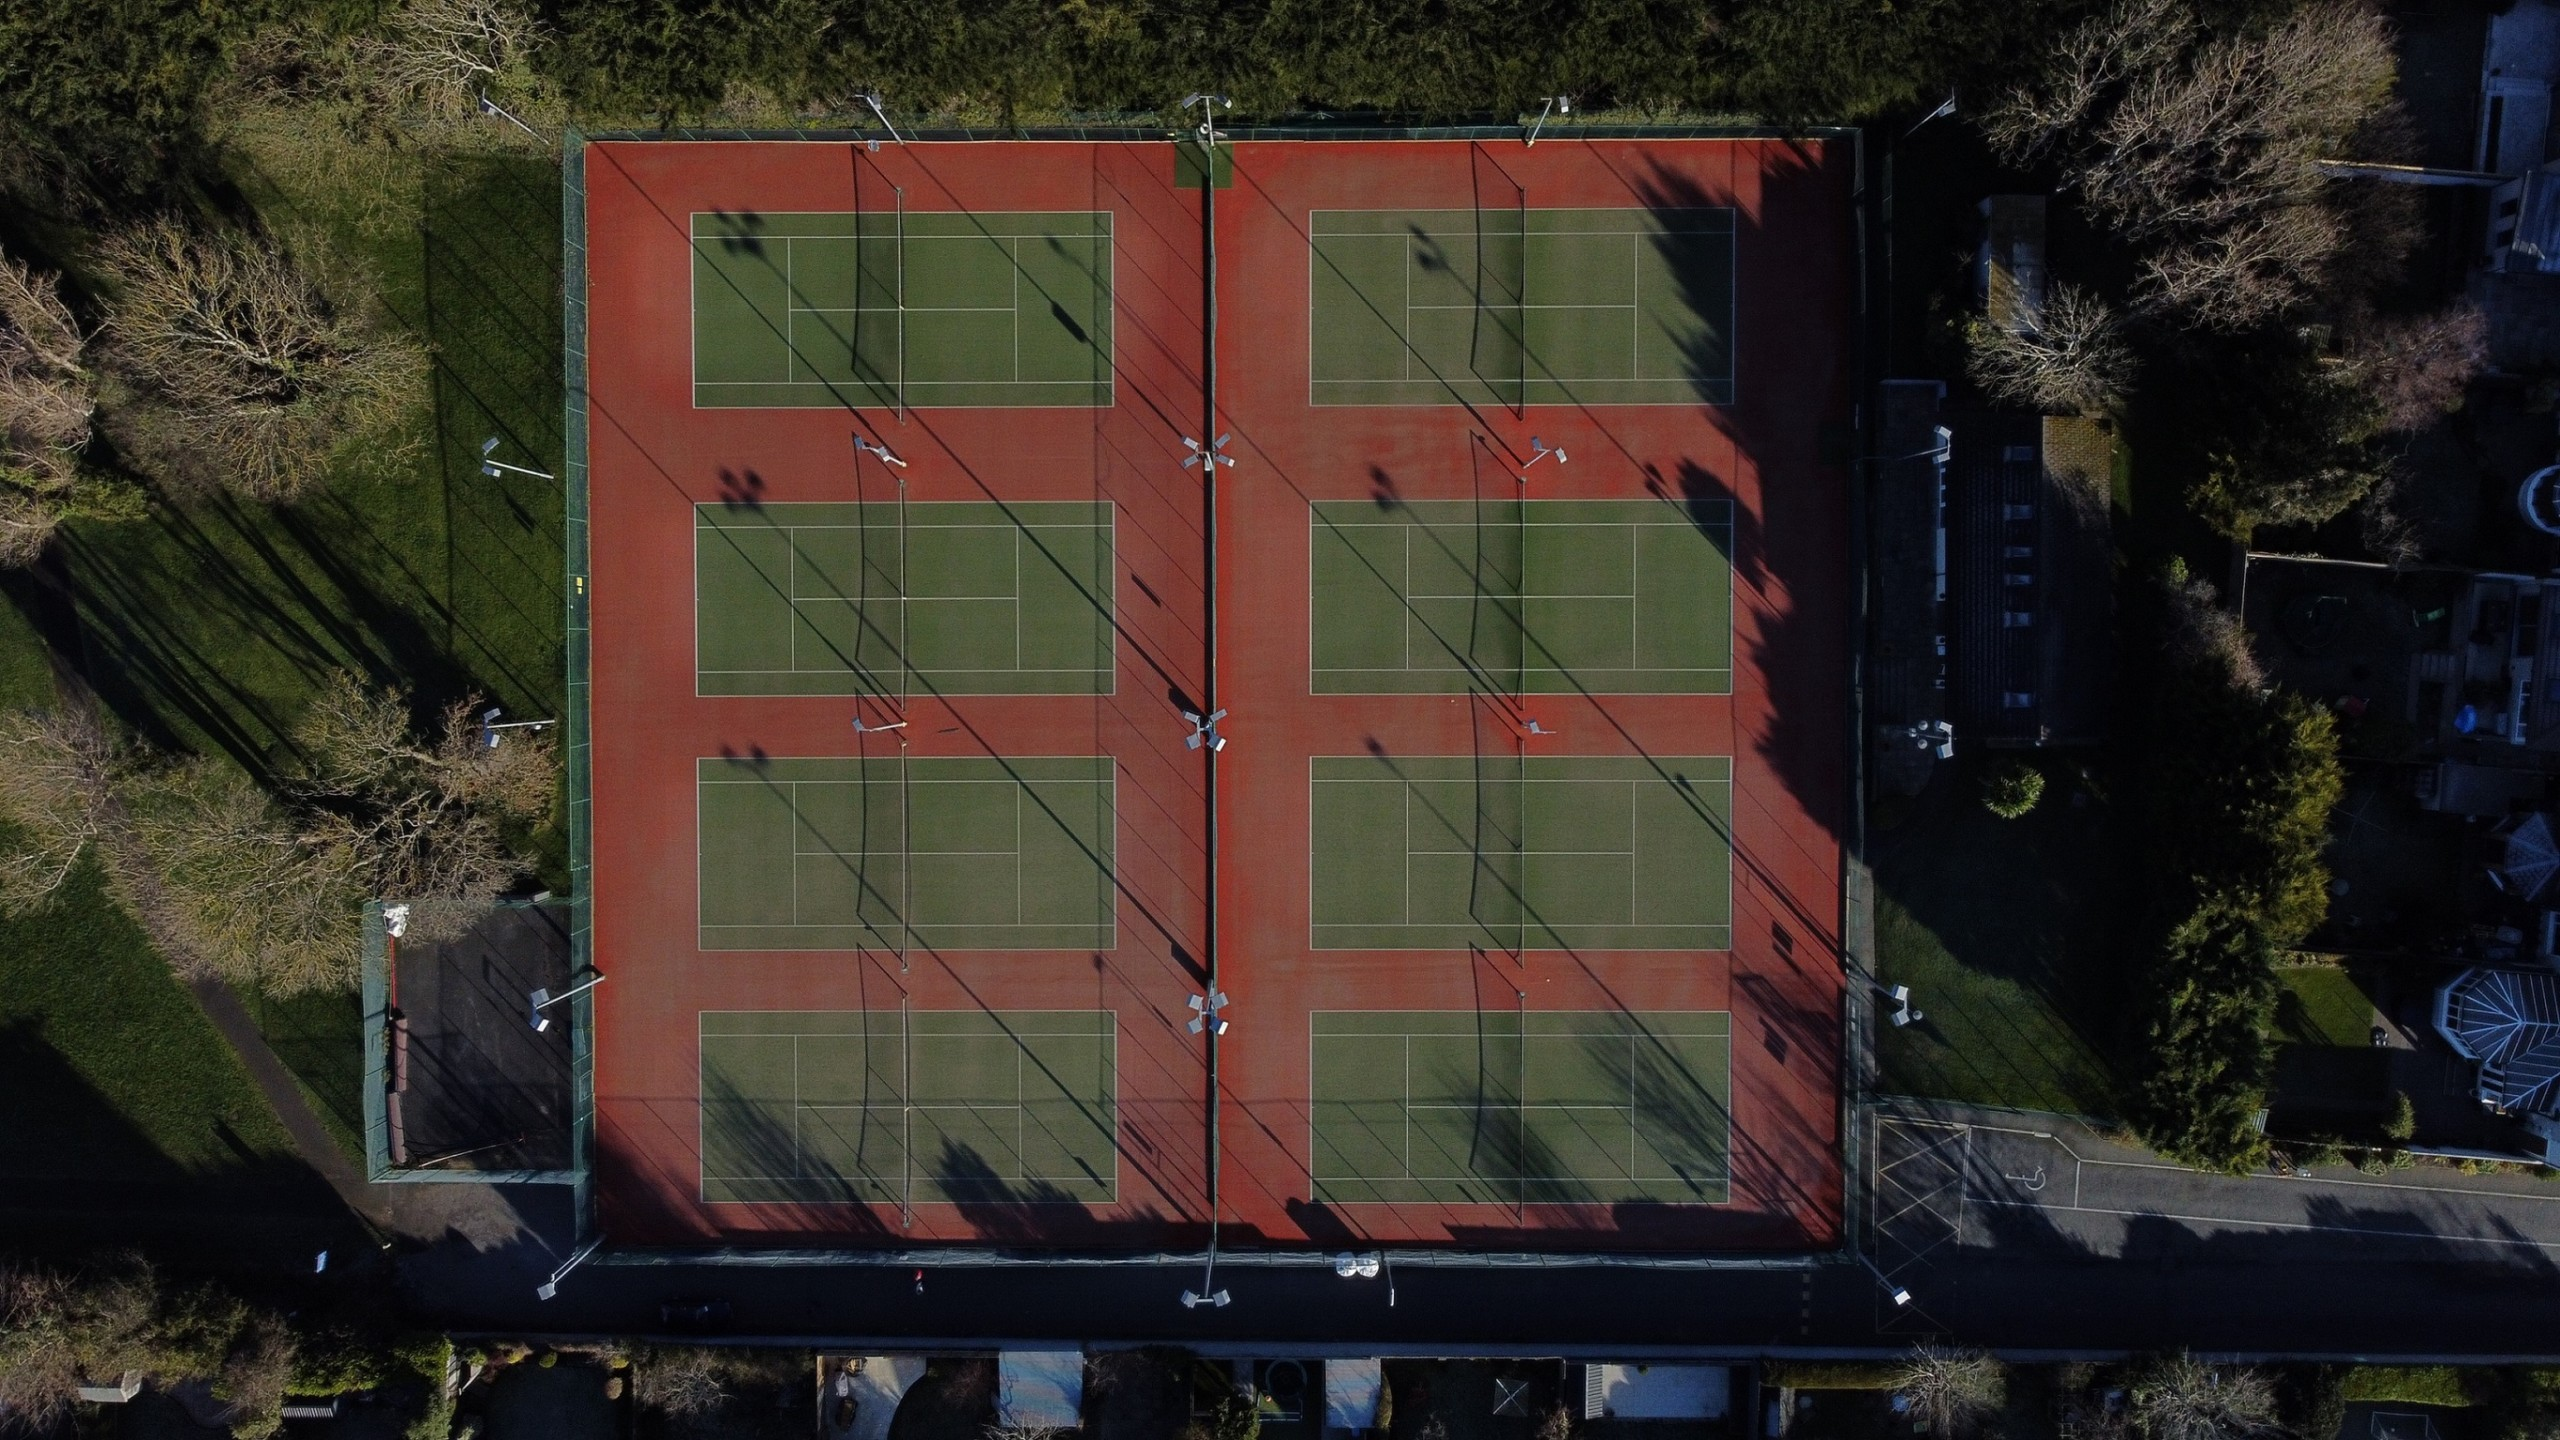 Leopardstown Tennis Club Courts Aerial View